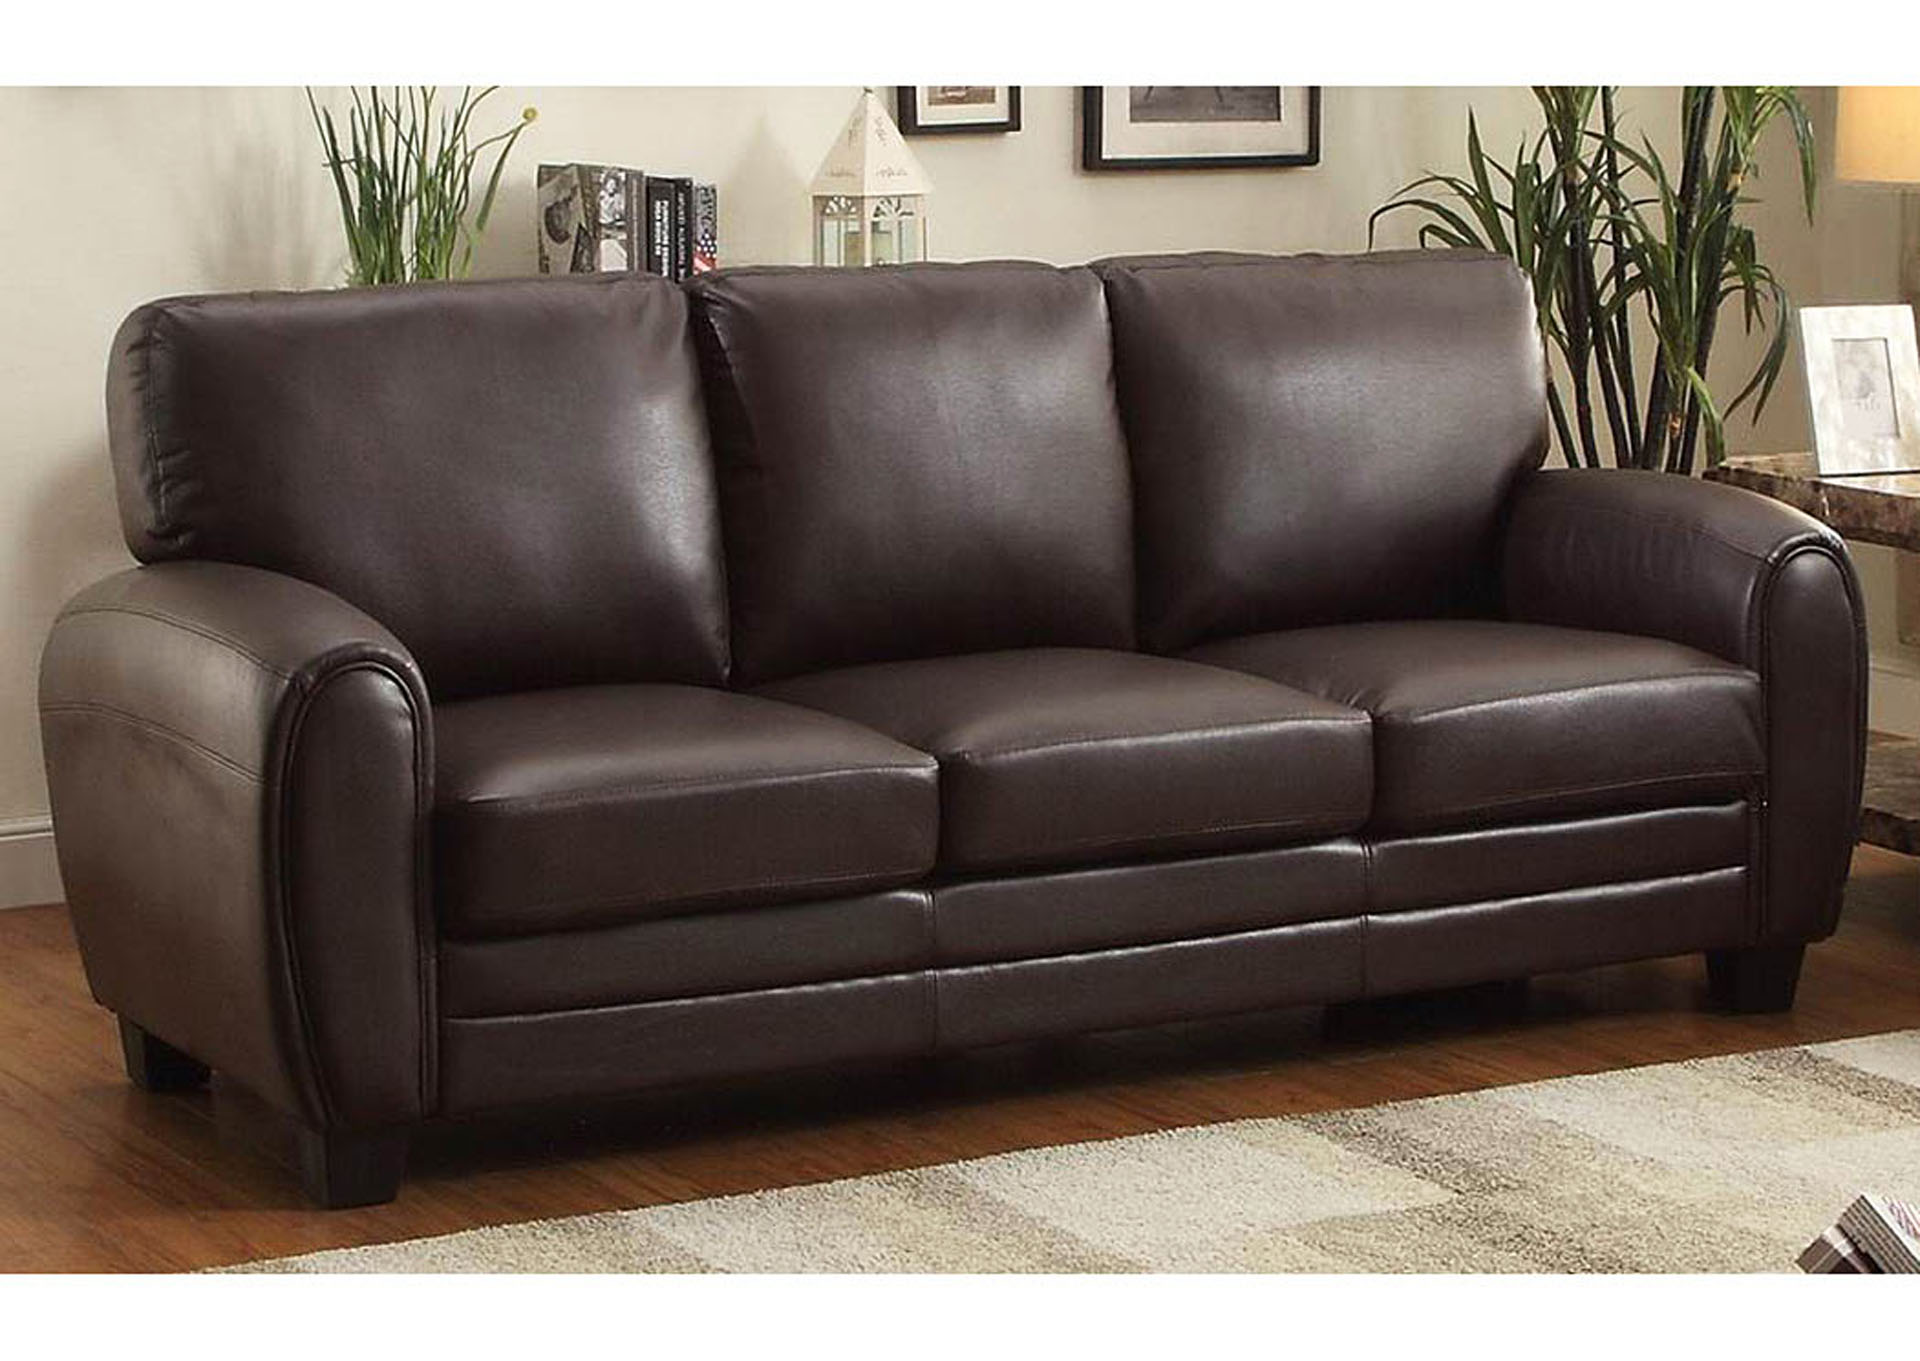 Premier Furniture Gallery Rubin Dark Brown Sofa